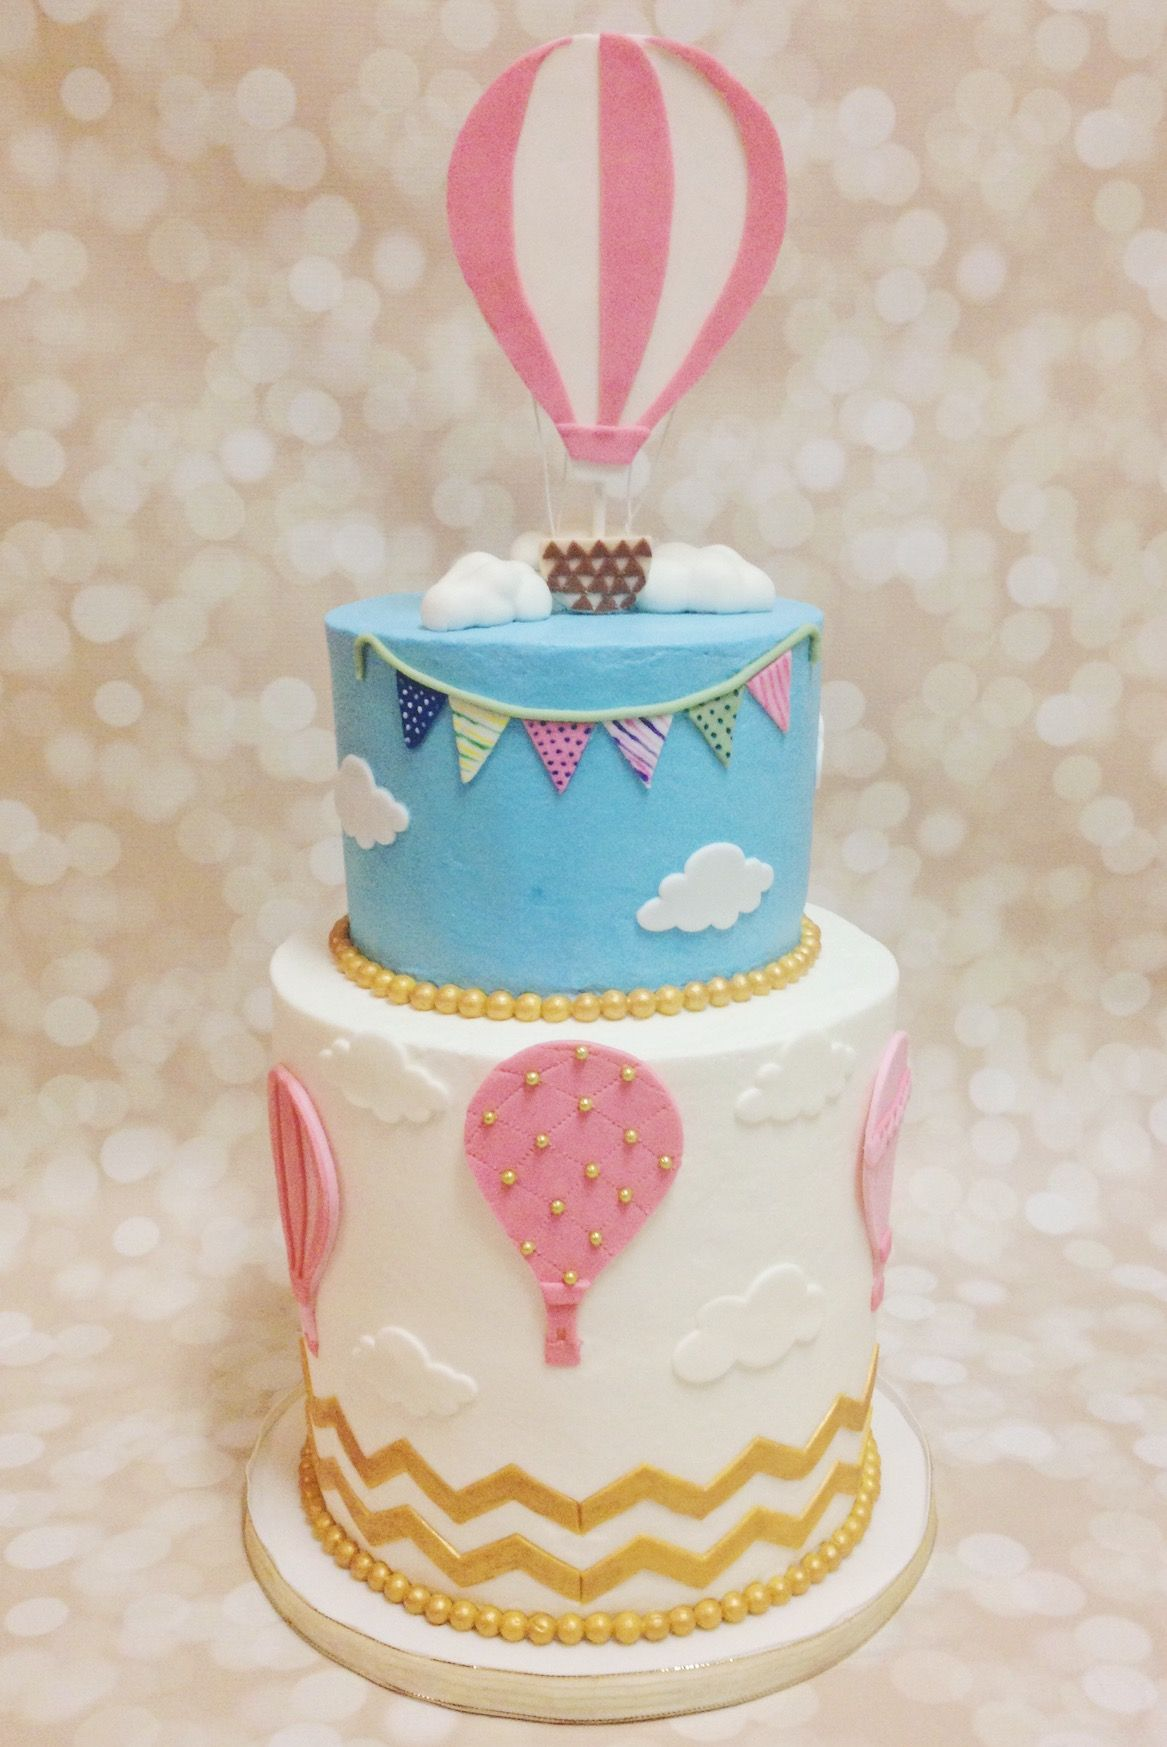 Custom Hot Air Balloon Birthday Cake by A Little Slice of Heaven